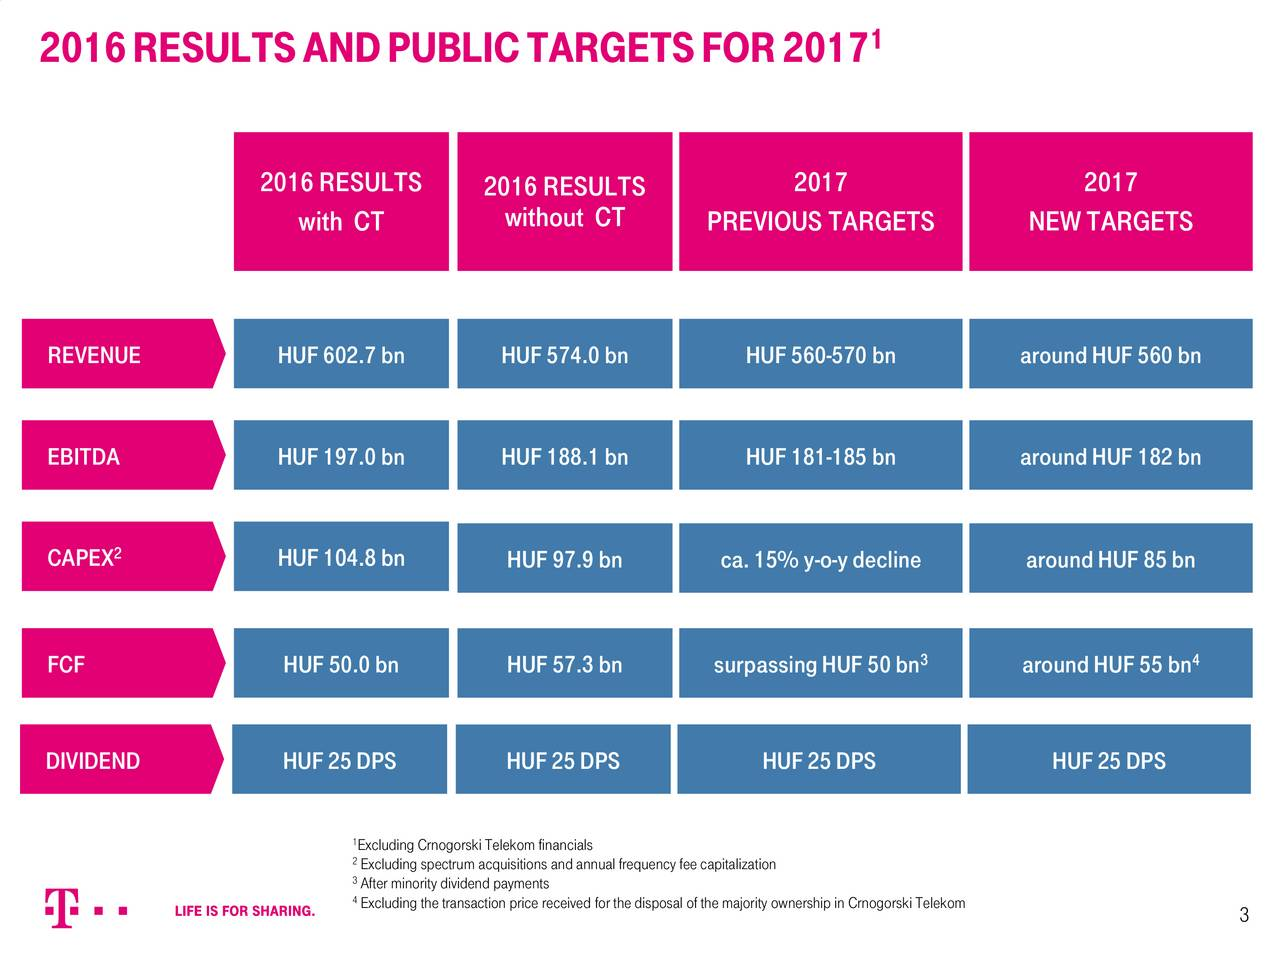 2016RESULTSANDPUBLICTARGETSFOR2017 2016RESULTS 2016RESULTS 2017 2017 with CT without CT PREVIOUS TARGETS NEW TARGETS REVENUE HUF602.7bn HUF574.0bn HUF560-570 bn aroundHUF560bn EBITDA HUF197.0bn HUF188.1bn HUF181-185 bn aroundHUF182bn CAPEX 2 HUF104.8bn HUF97.9bn ca.15% y-o-ydecline aroundHUF85bn 3 4 FCF HUF50.0bn HUF57.3bn surpassingHUF50bn aroundHUF55bn DIVIDEND HUF25DPS HUF25DPS HUF25DPS HUF25DPS ExcludingCrnogorskiTelekomfinancials 2Excluding spectrum acquisitions andannualfrequency fee capitalization 3After minority dividend payments 4Excluding thetransaction price received forthedisposal ofthemajority ownershipi3 CrnogorskiTelekom